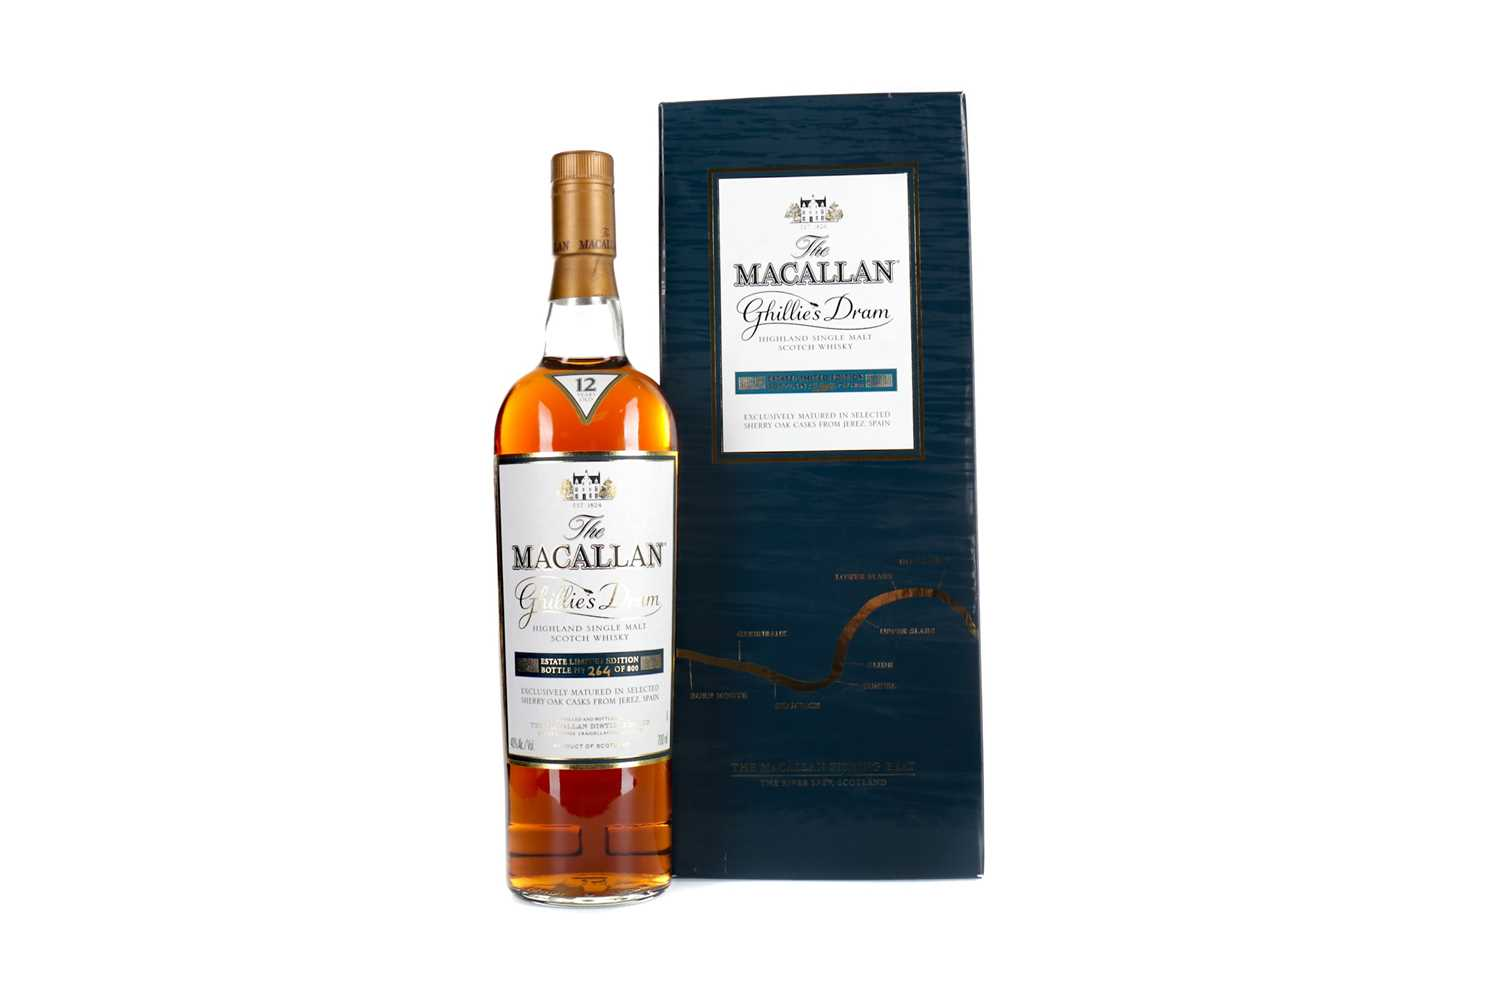 Lot 154 - MACALLAN GHILLIE'S DRAM 12 YEARS OLD